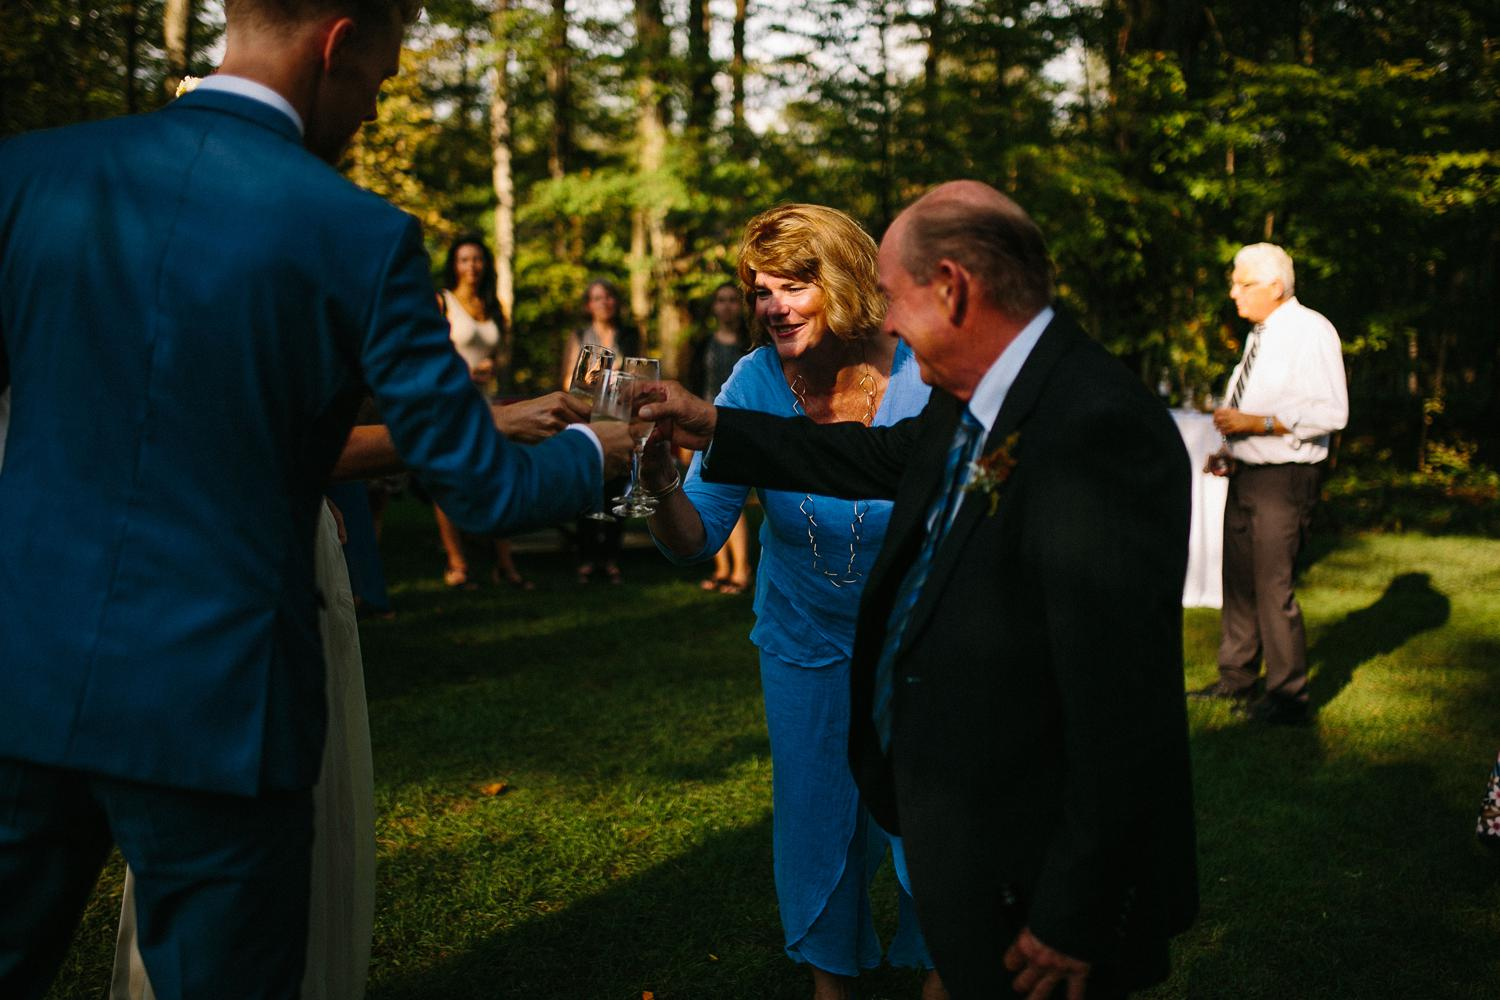 Katie___Sean_Wedding_132.jpg